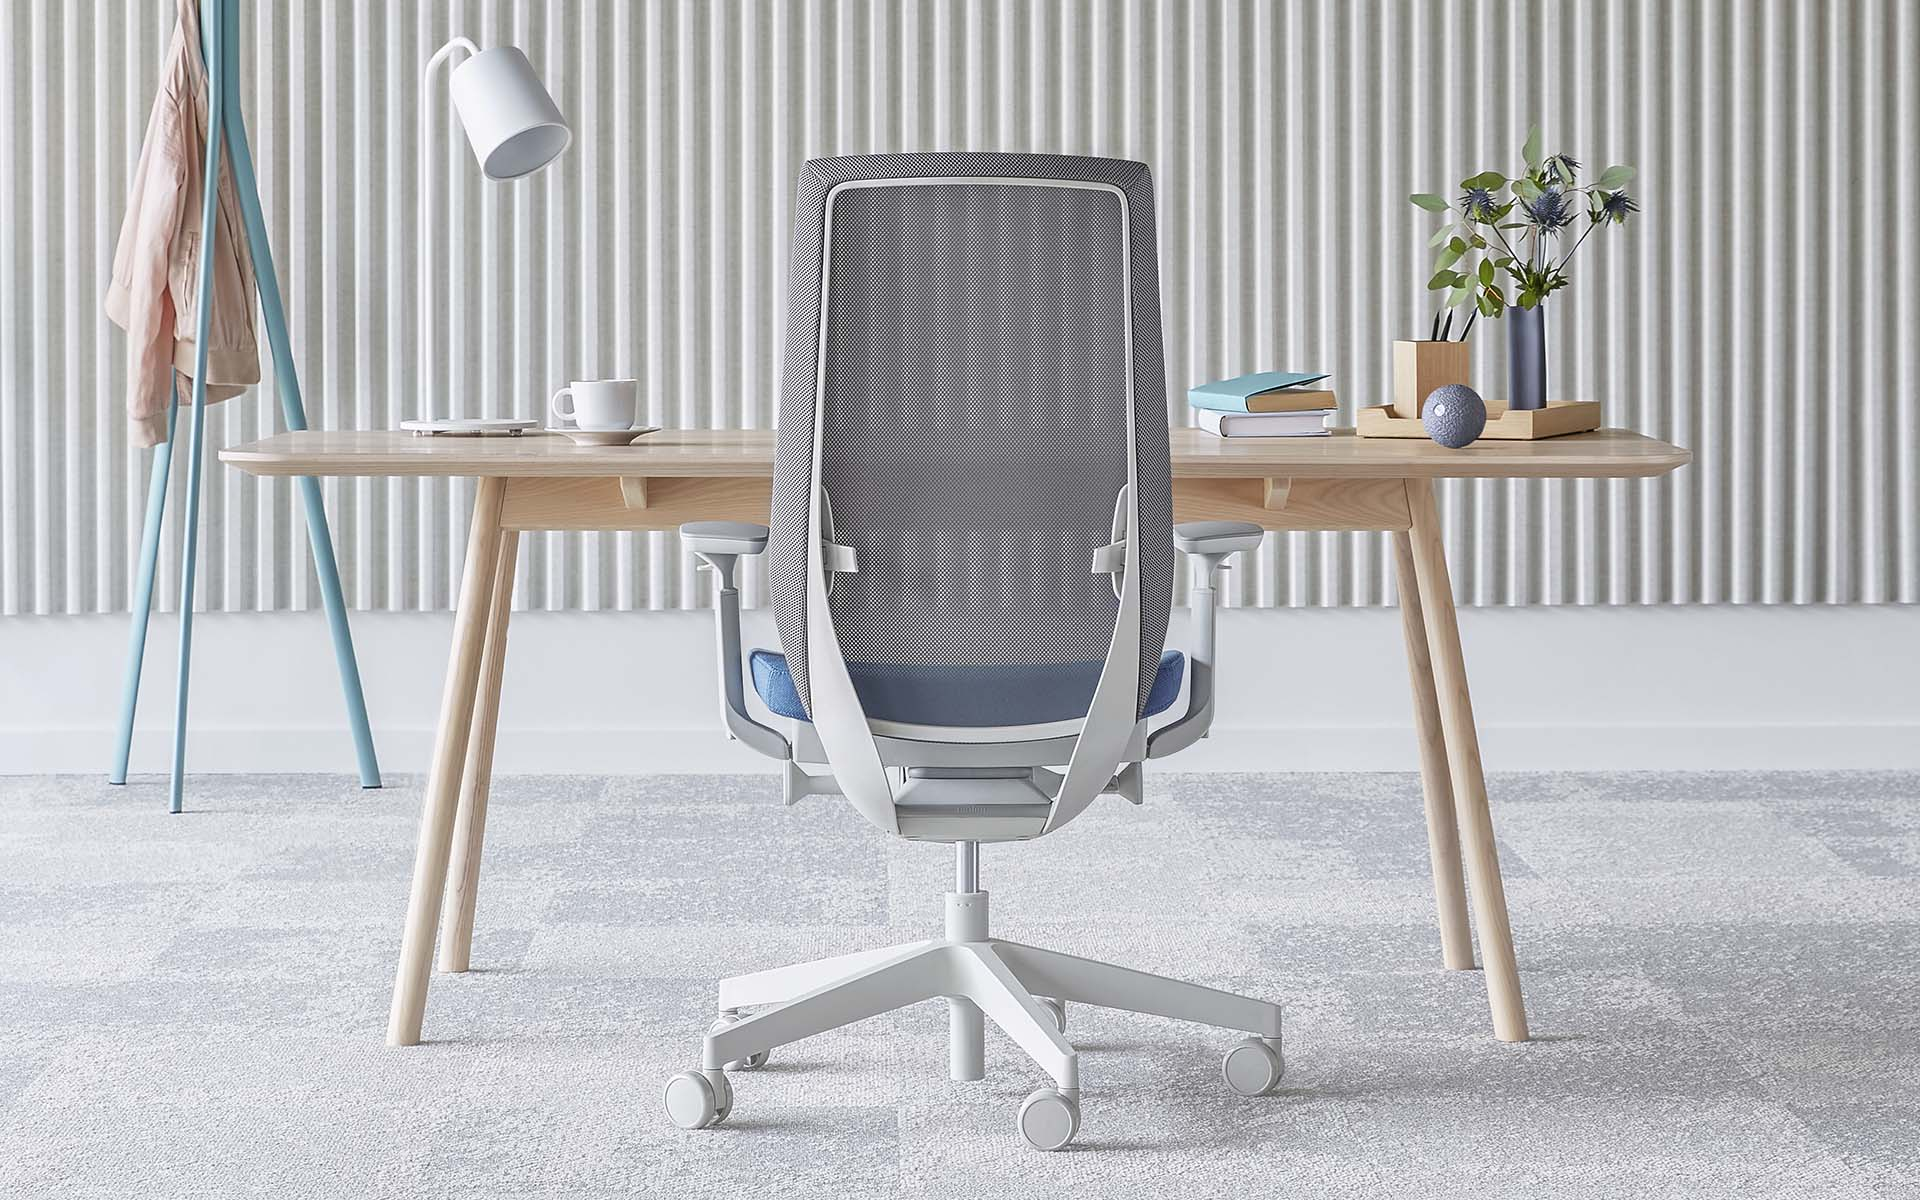 Light grey Profim Accis Pro office chair by ITO Design with light blue upholstery at minimalist desk